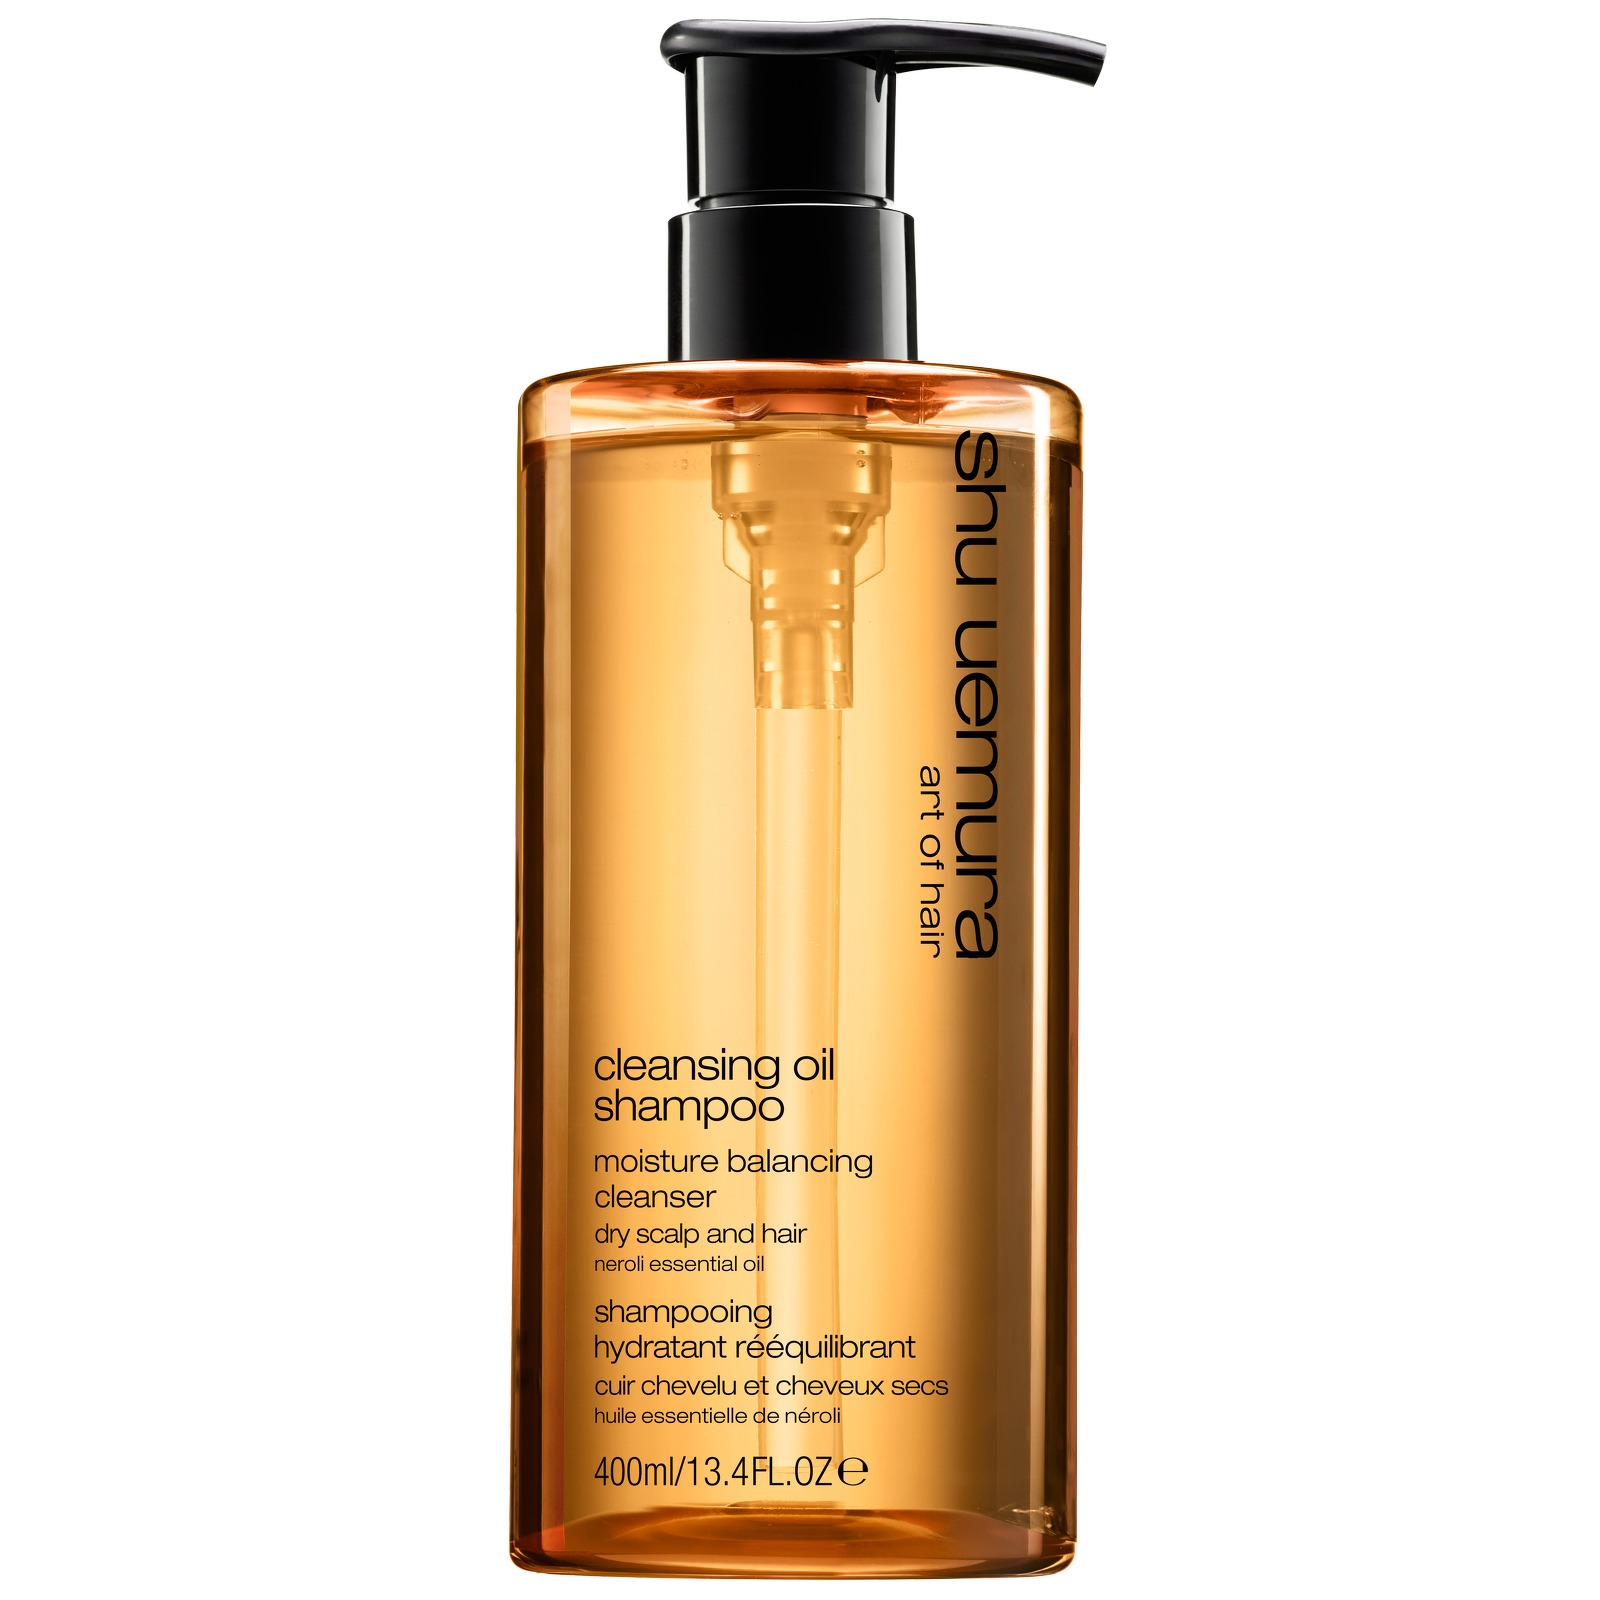 Shu Uemura Art Of Hair Cleansing Oil Shampoo Moisture Balancing Cleanser For Dry Hair And Scalp